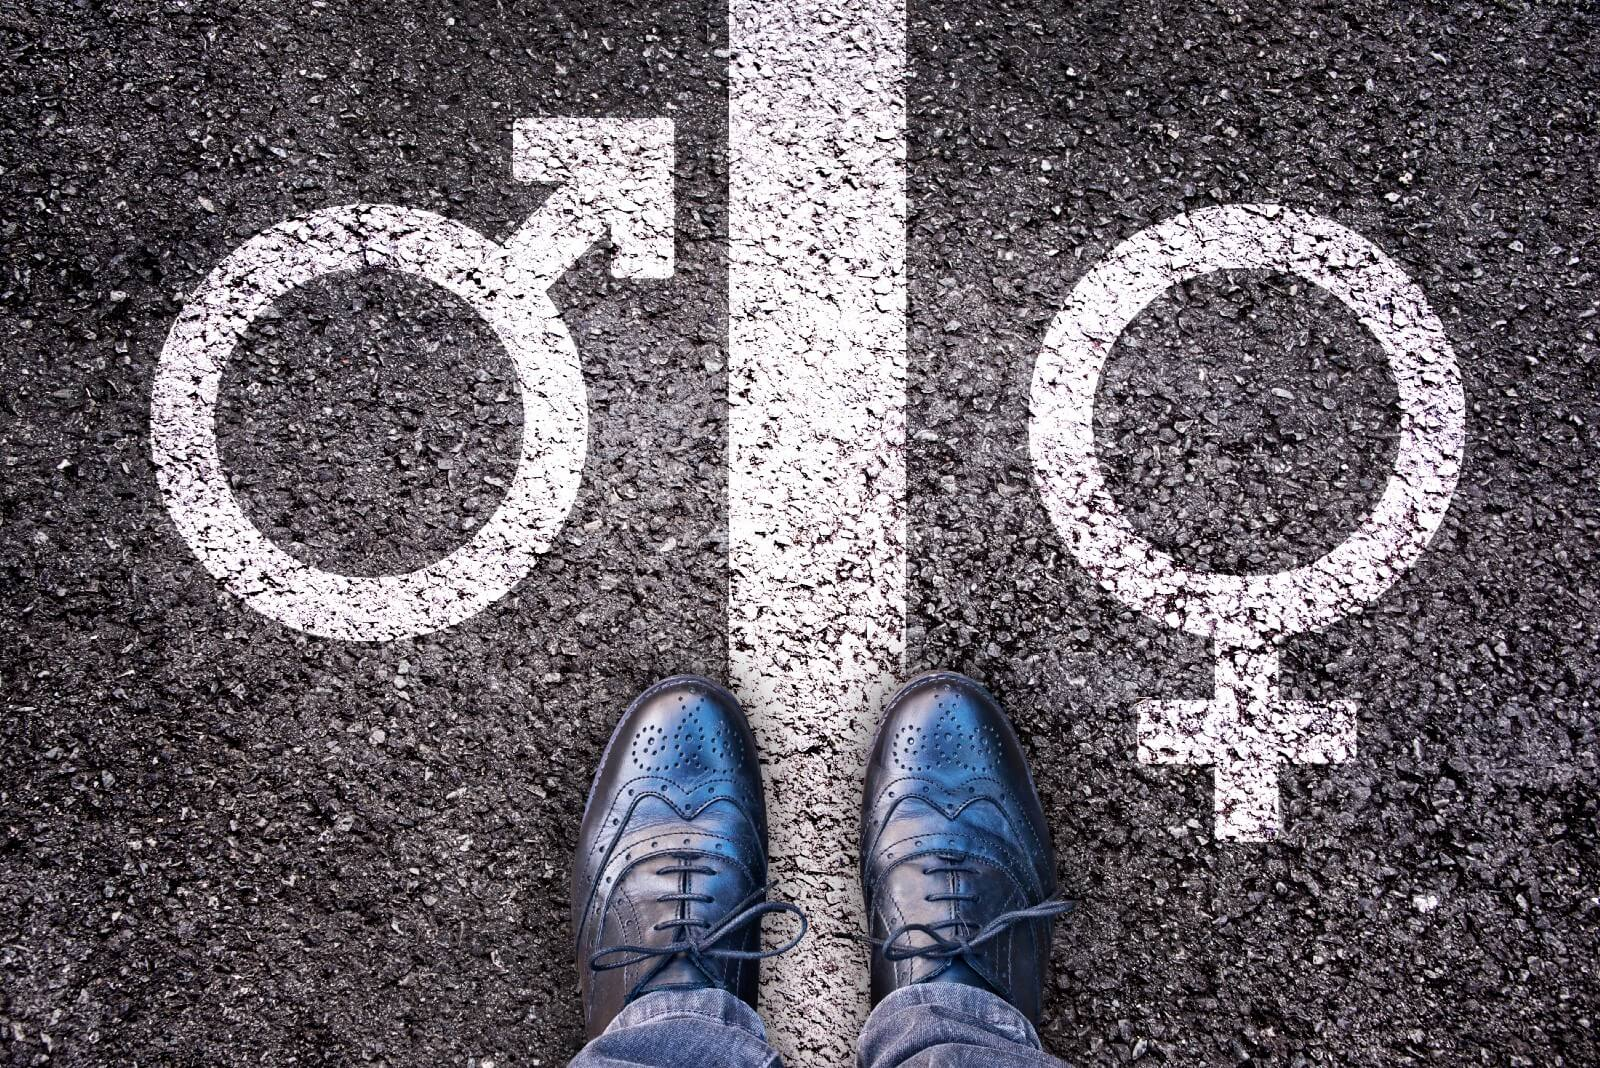 Shoes on asphalt straddling a line — symbol for male is on the left, symbol for female is on the right